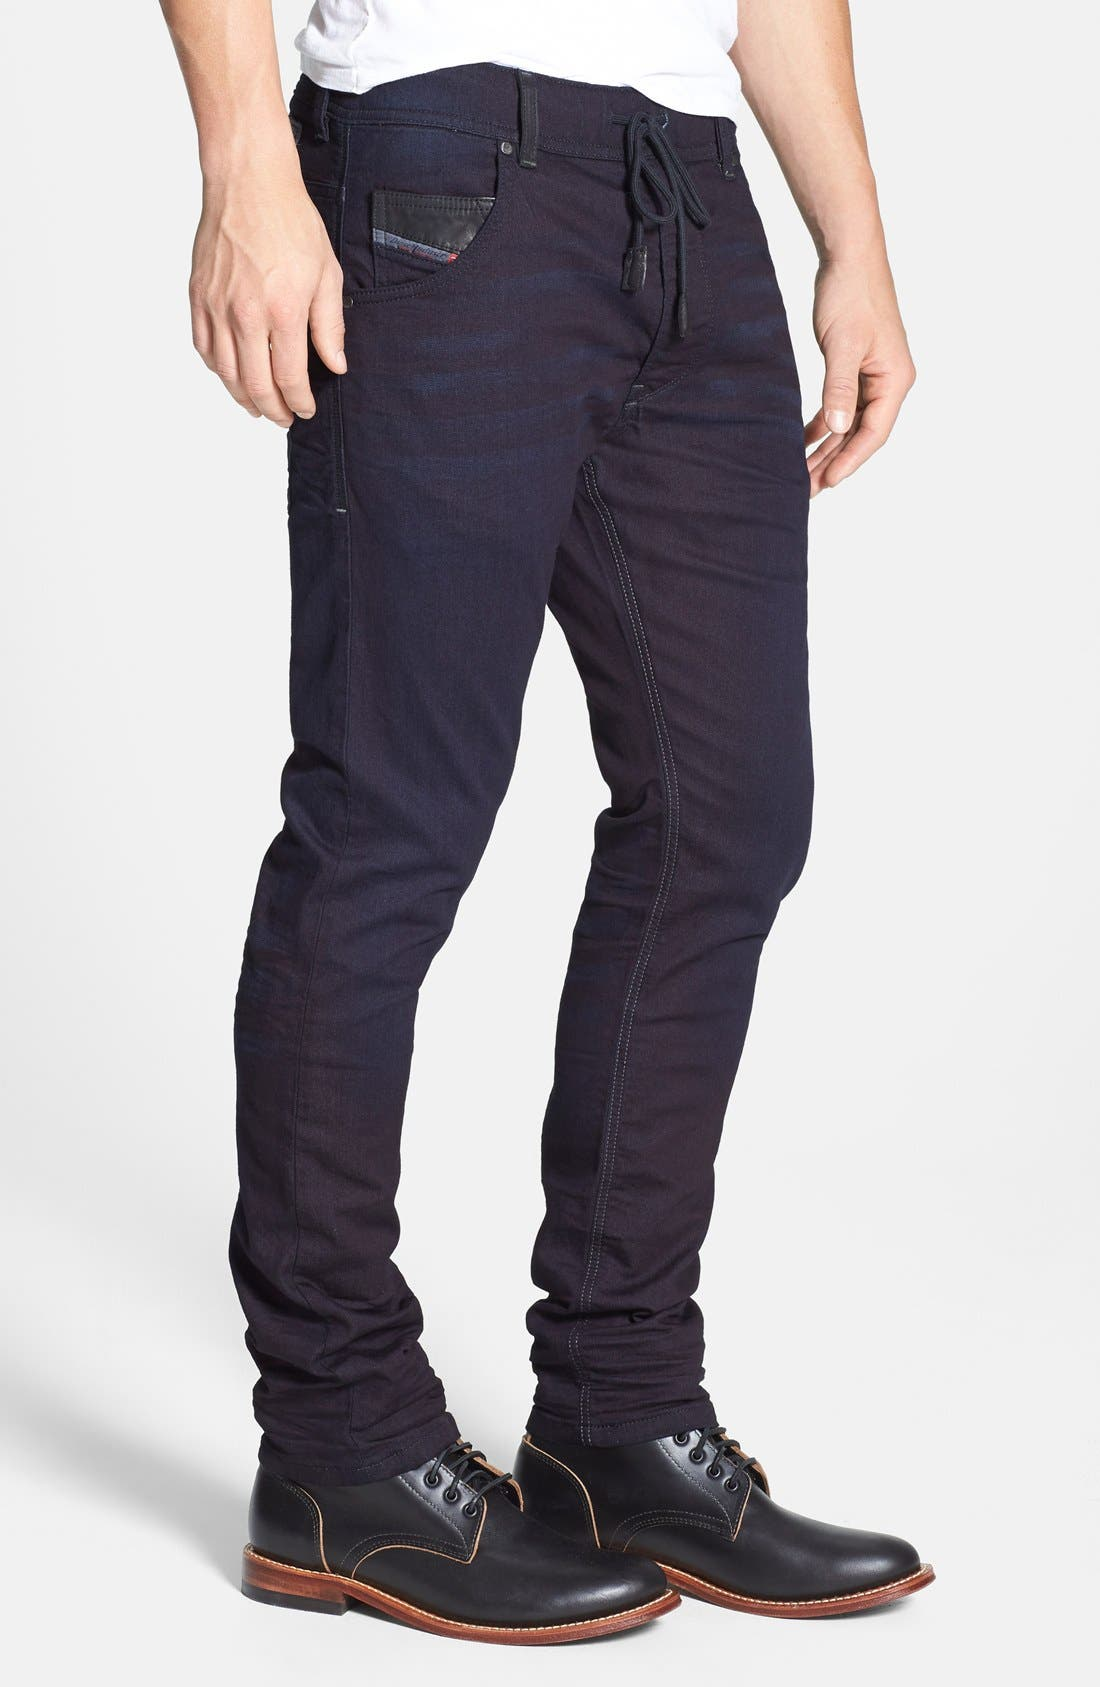 Krooley Jogg Slouchy Skinny Fit Jeans,                             Alternate thumbnail 5, color,                             0829P